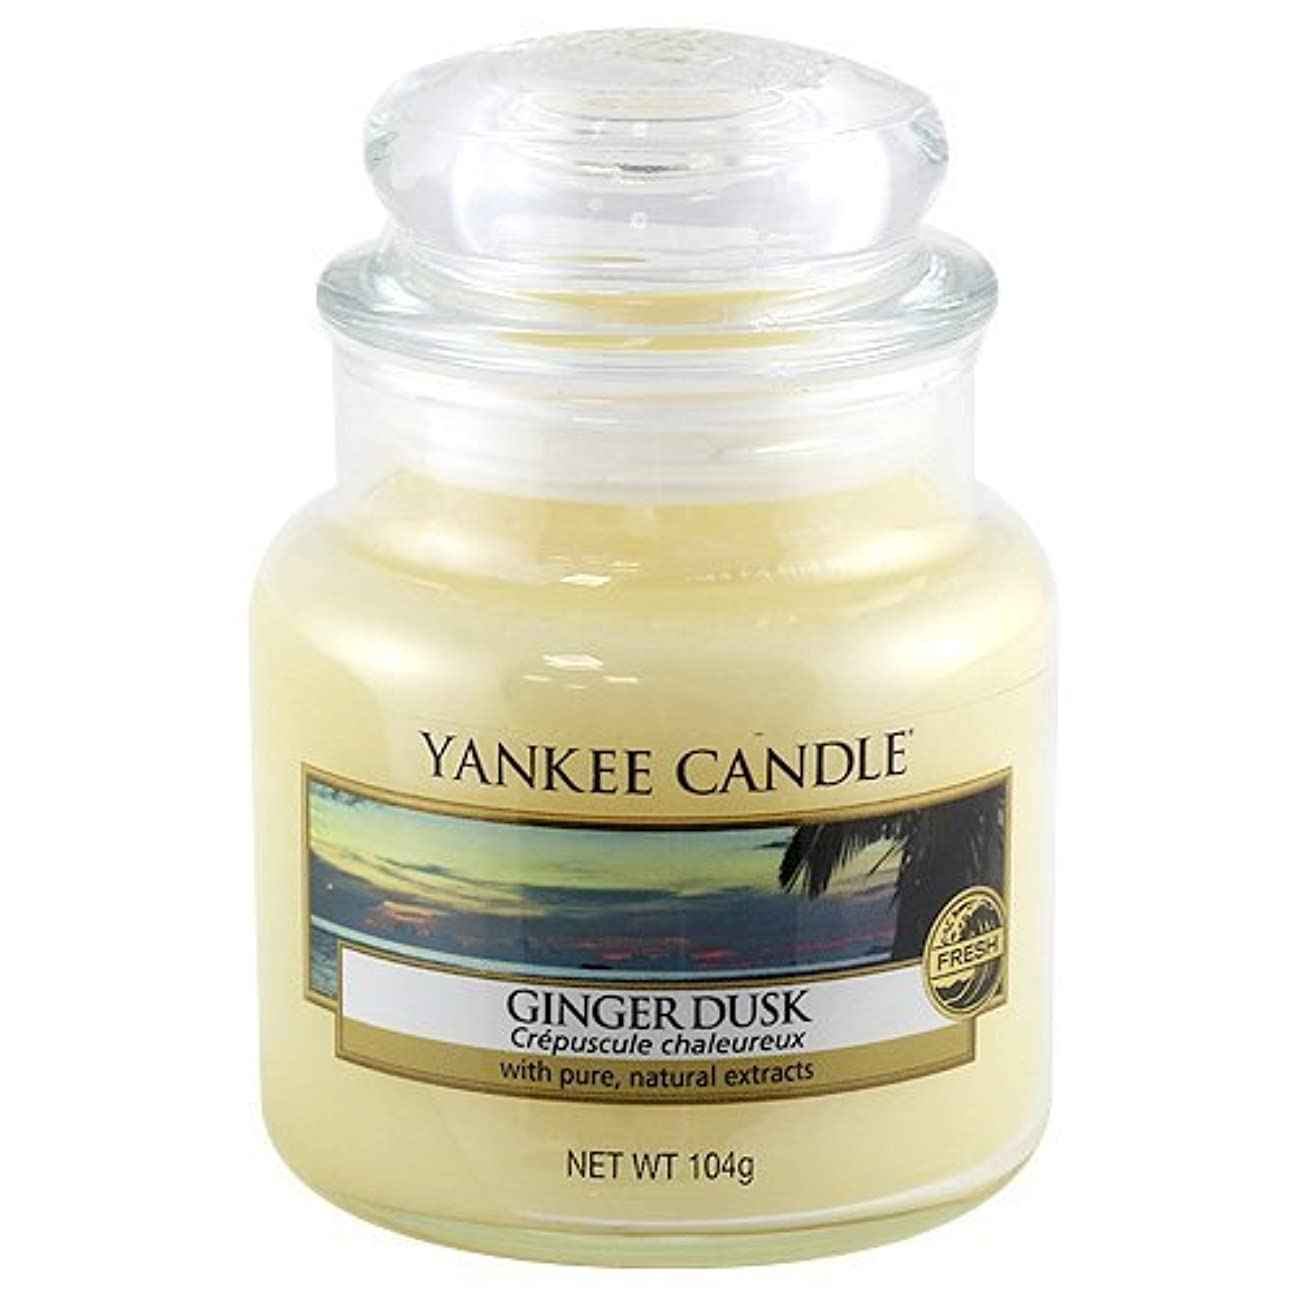 ロビー貴重な落ち着かないYankee Candle Jar Ginger Dusk Small White by Yankee Candle [並行輸入品]